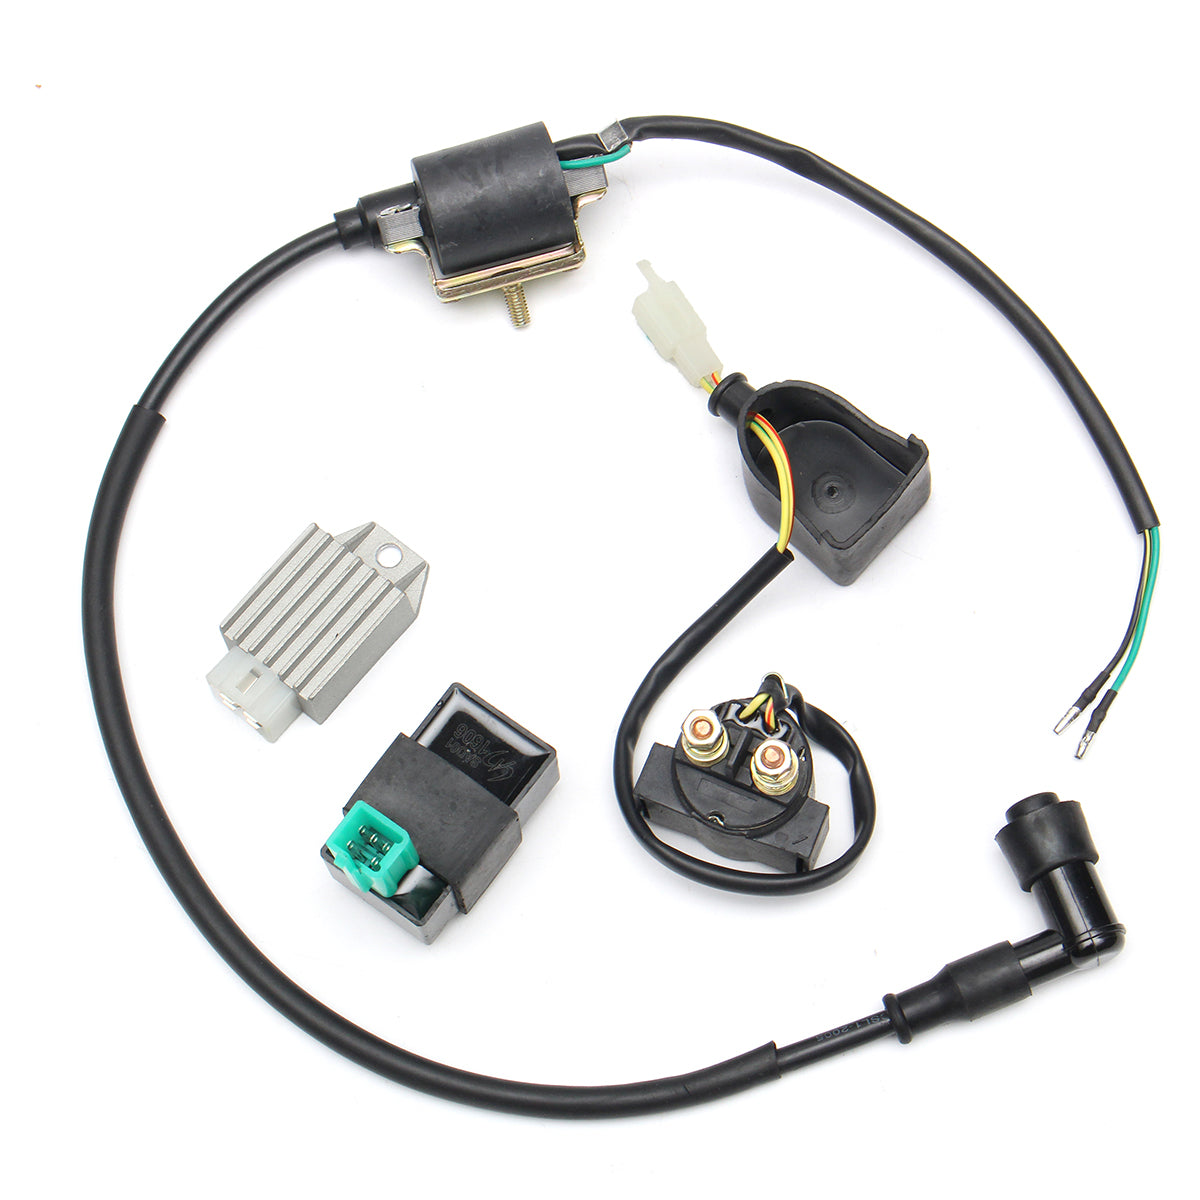 Cdi Motoforce Racing Kymco 2 Takt 6 Pins New 50 70 90 110cc 125cc Wire Harness Wiring Ignition Coil 5 Pin Regulator Solenoid For Quad Dirt Bike